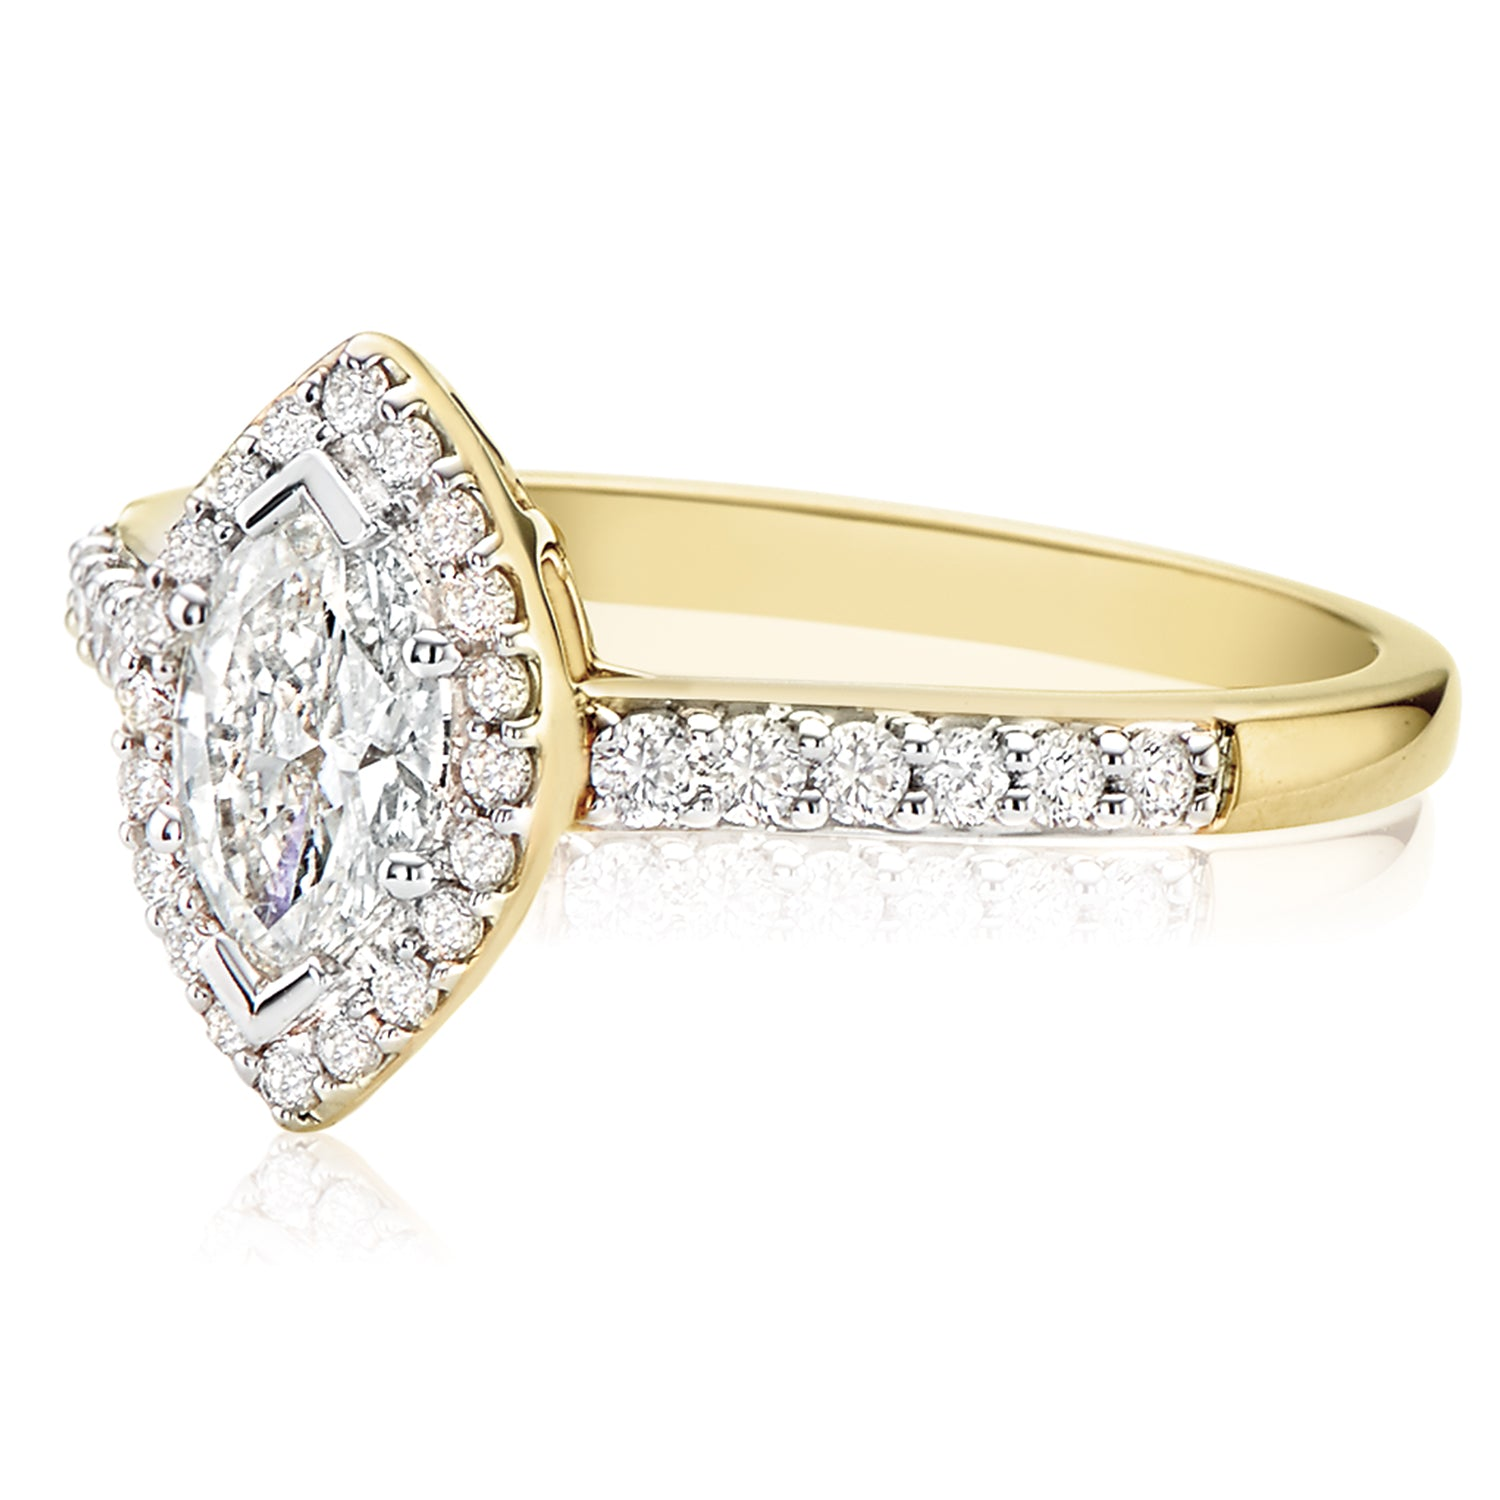 18ct Yellow Gold Marquise & Round Brilliant Cut with 1 CARAT tw of Diamonds